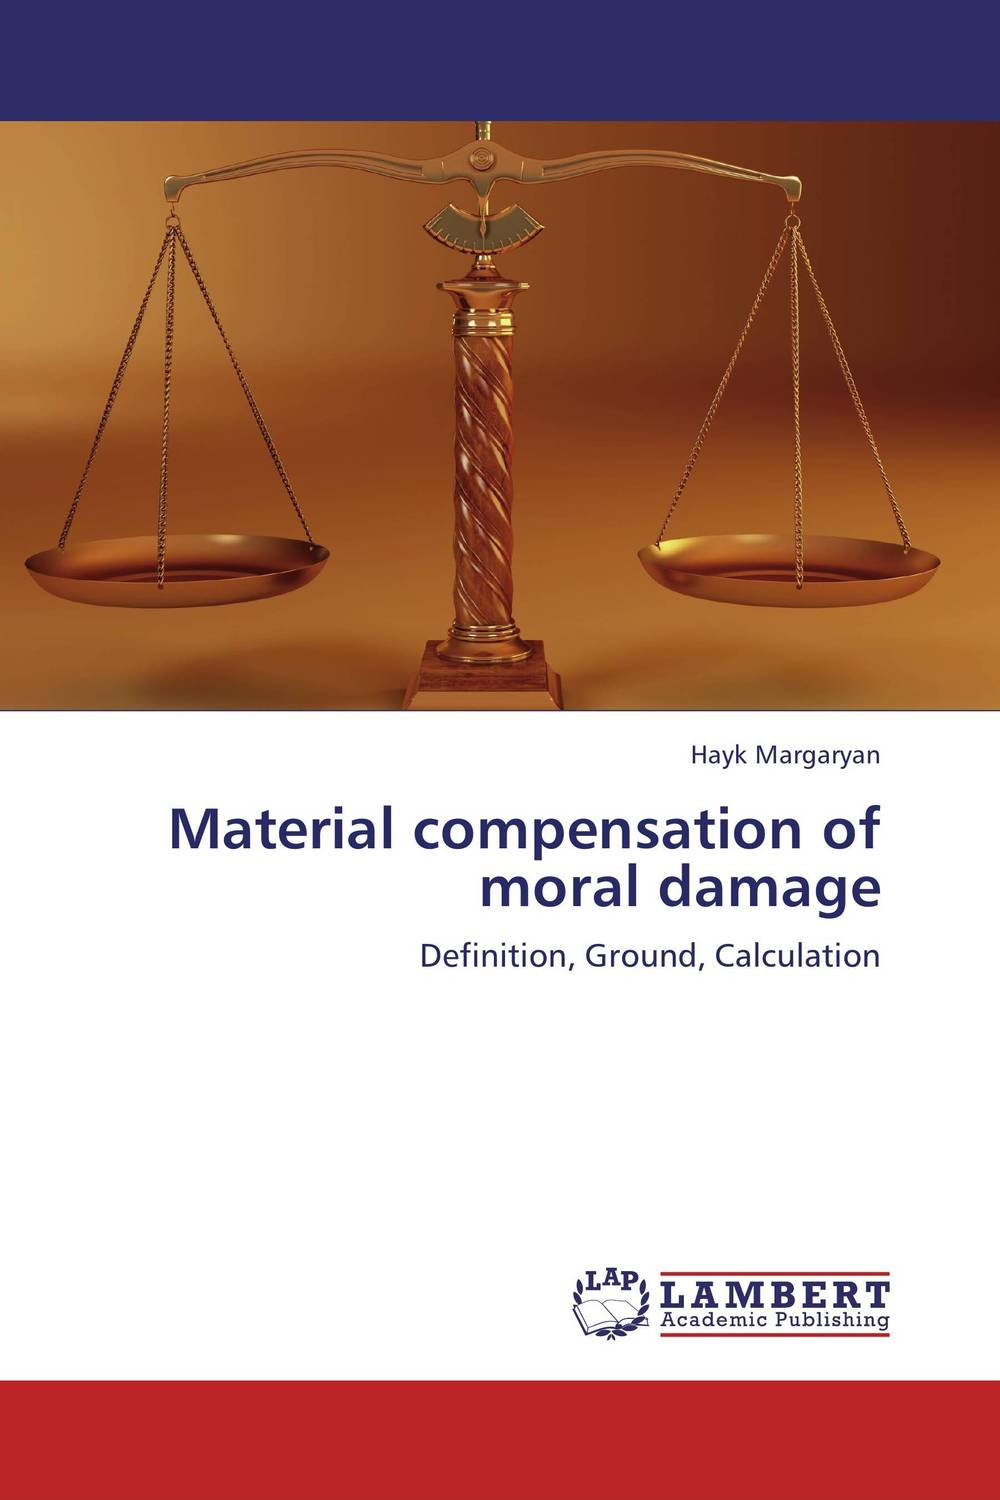 Material compensation of moral damage material compensation of moral damage